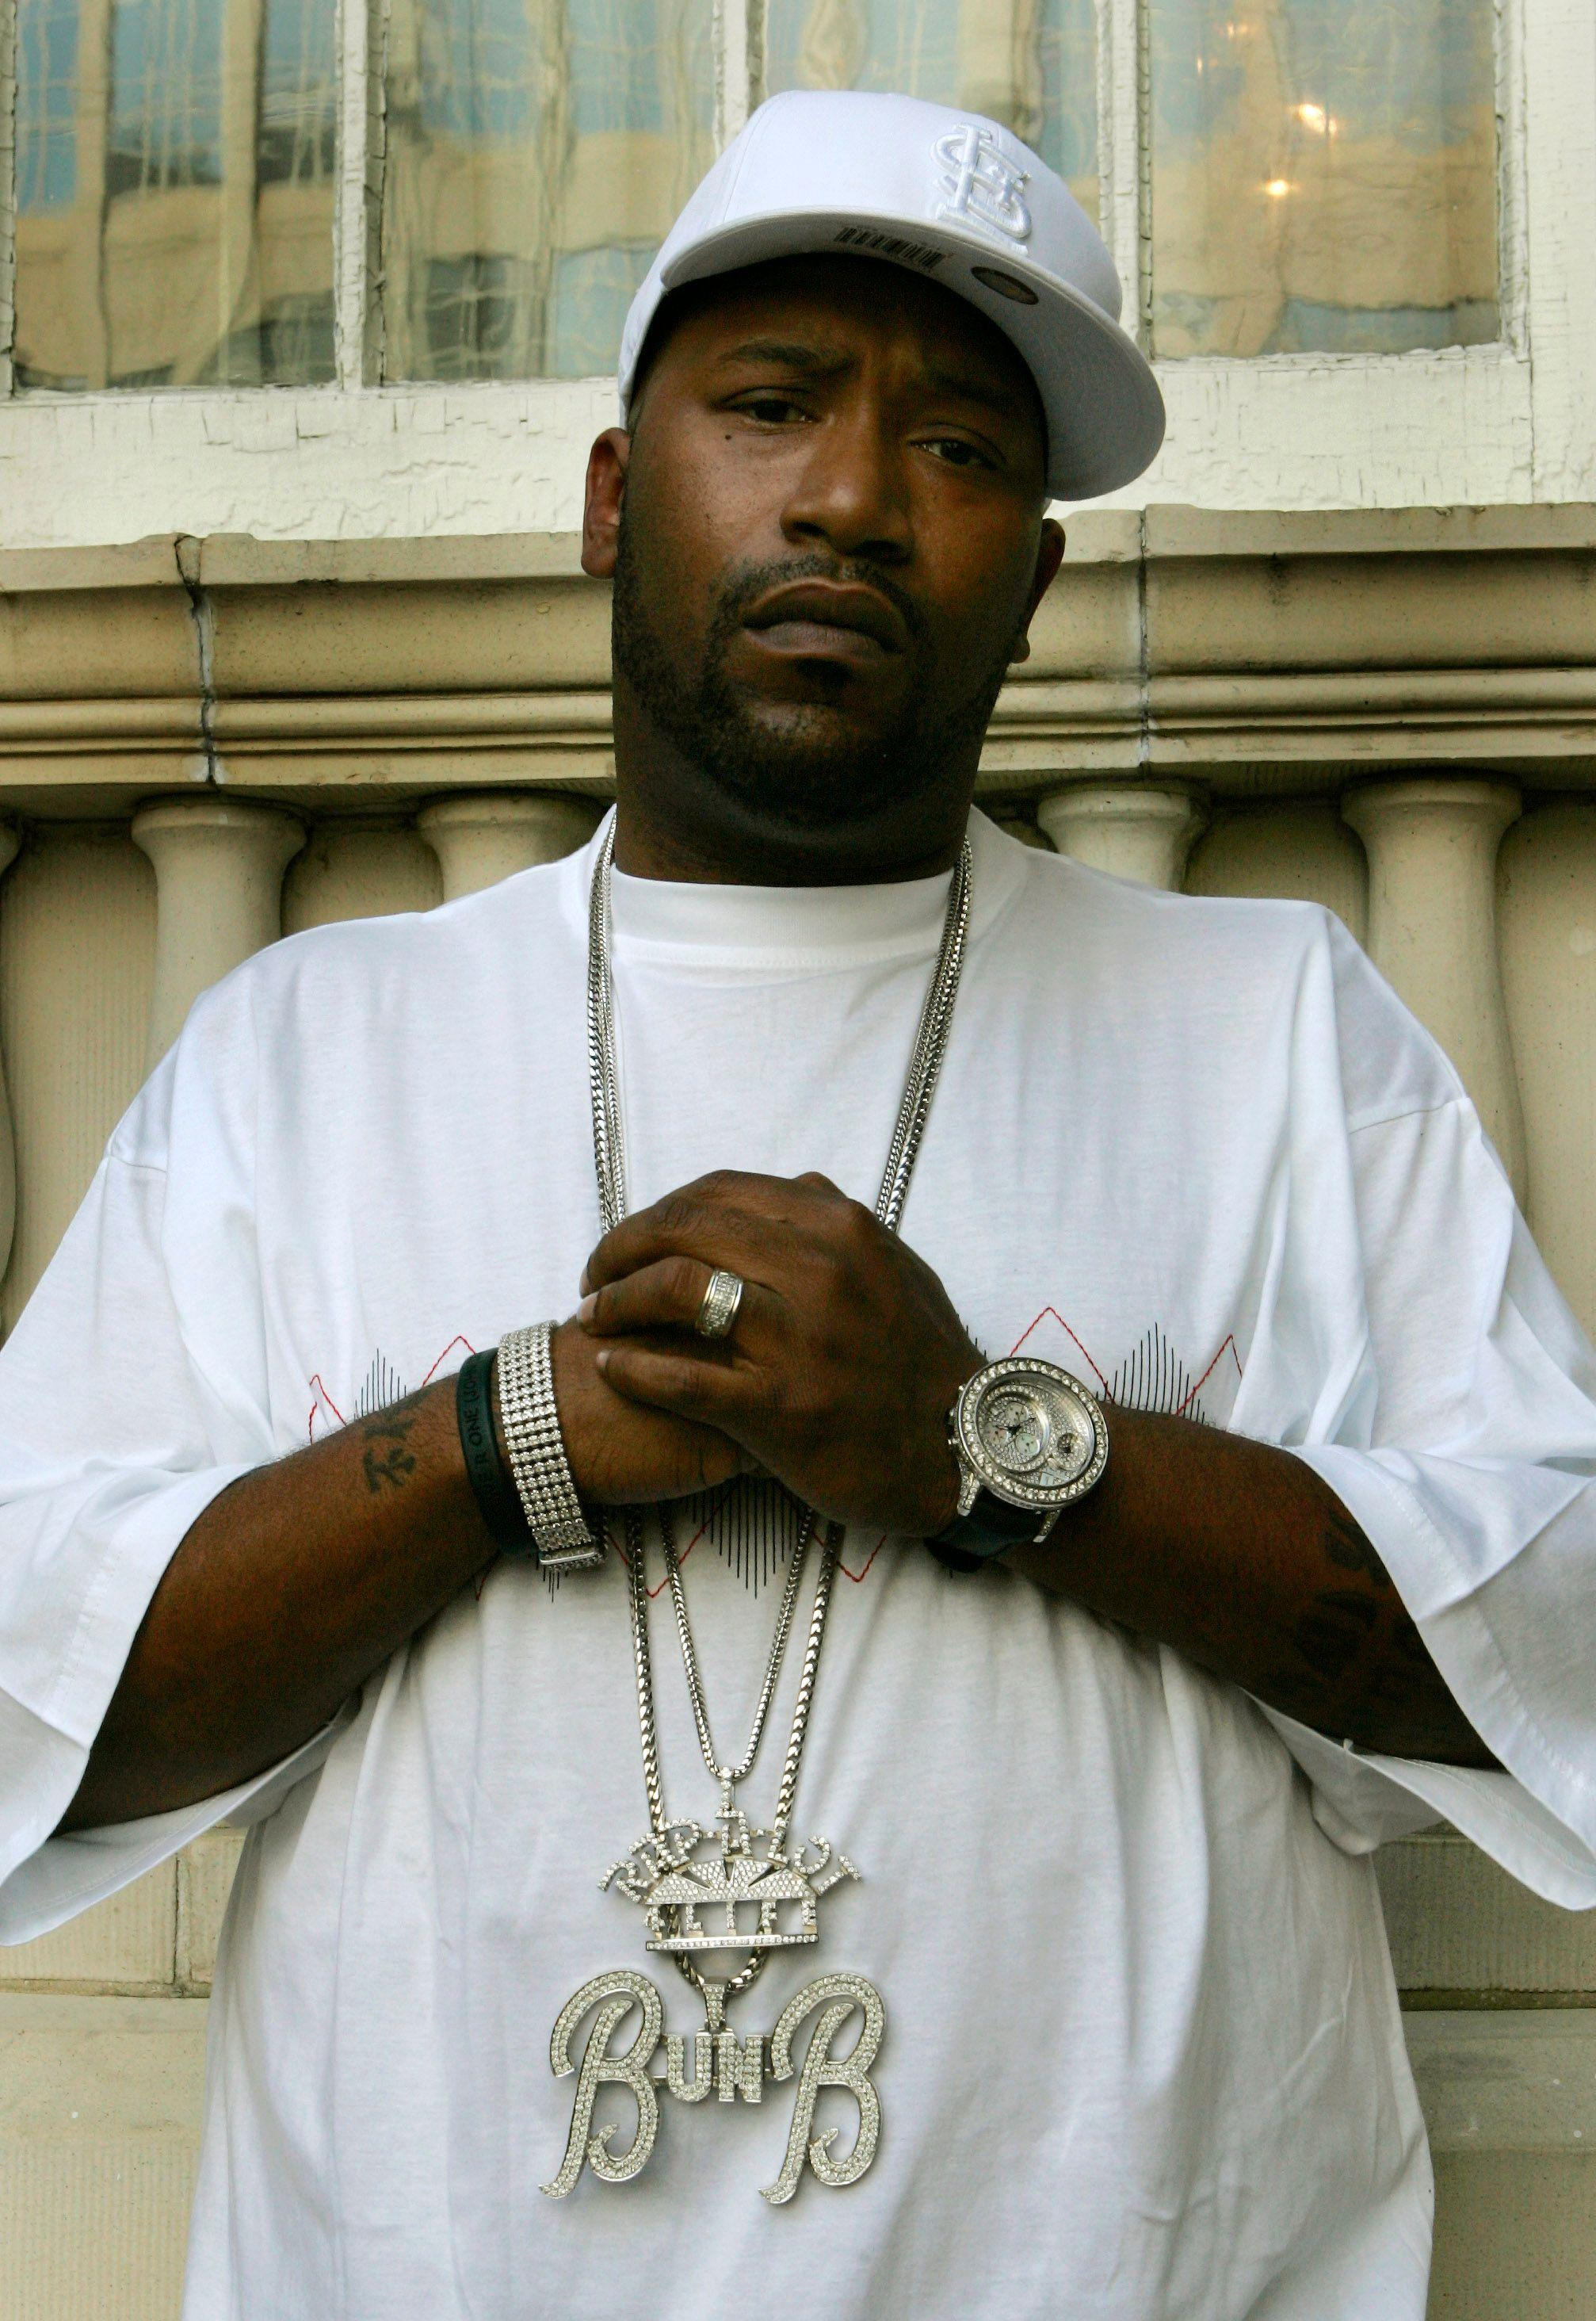 Rapper Bun B was 'courageous' in gunfight against armed home invader, his lawyer says